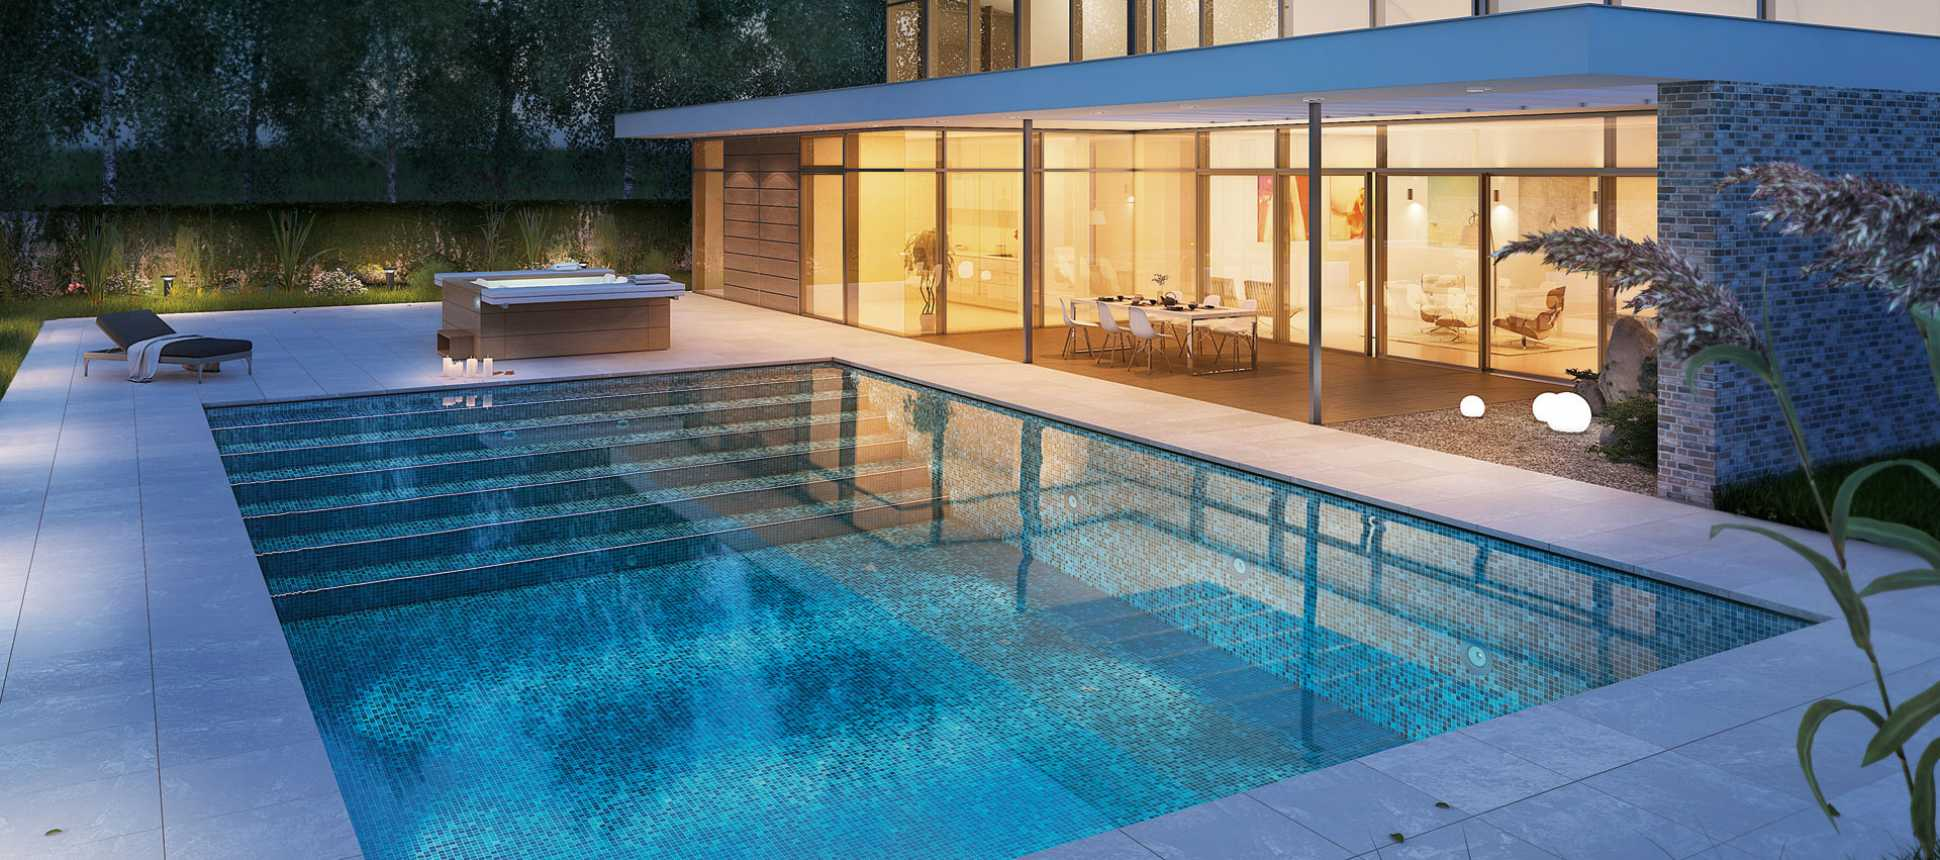 Swimming Pool MLine Mosaikbecken